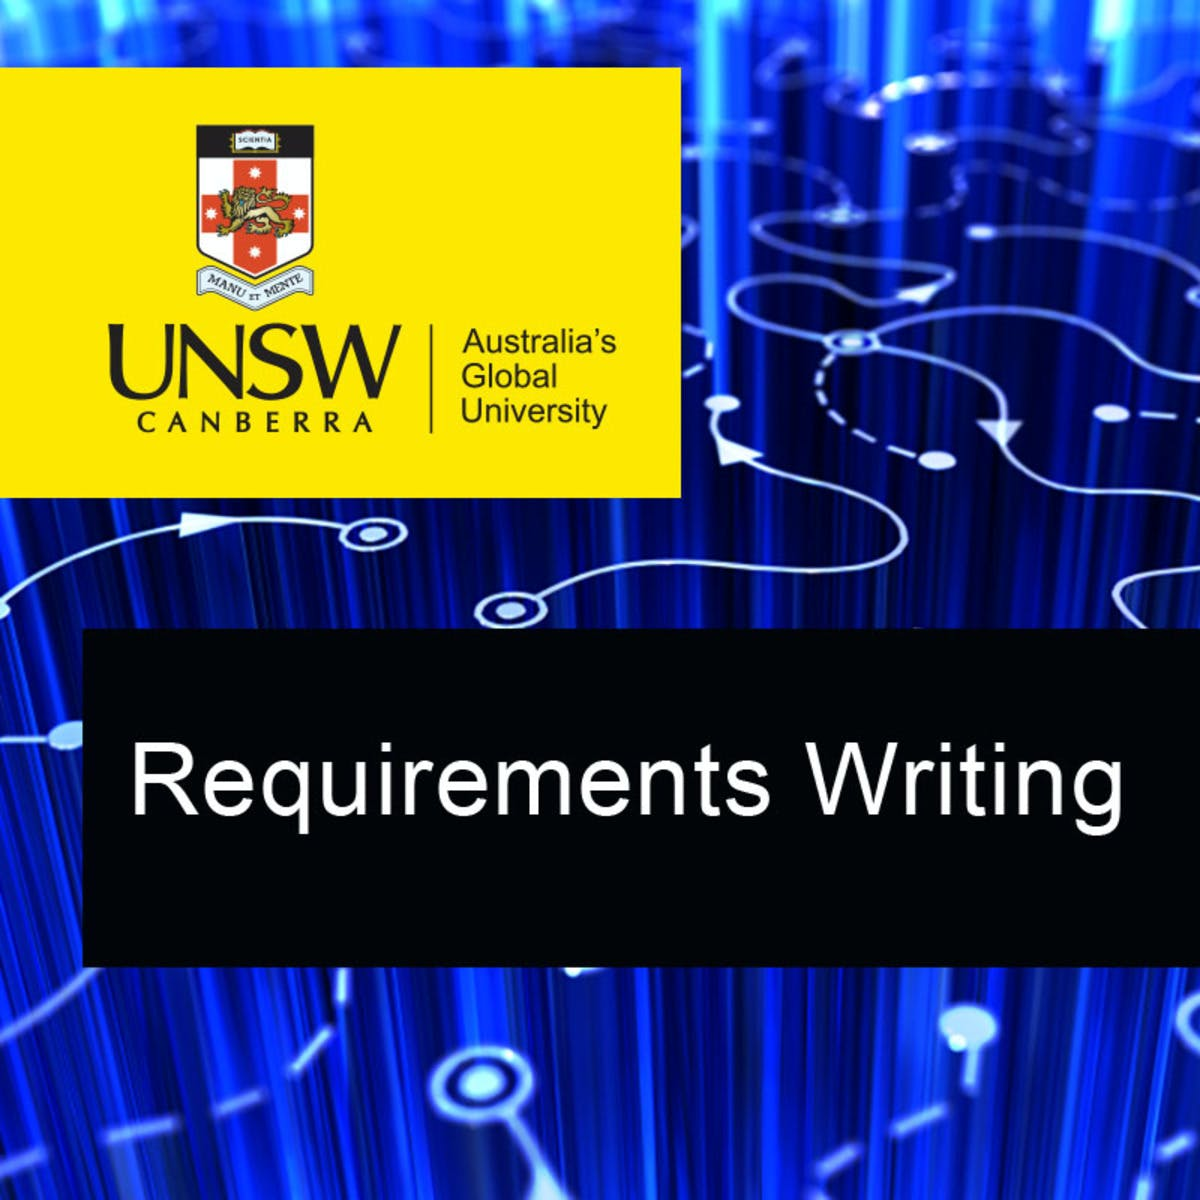 requirements writing coursera